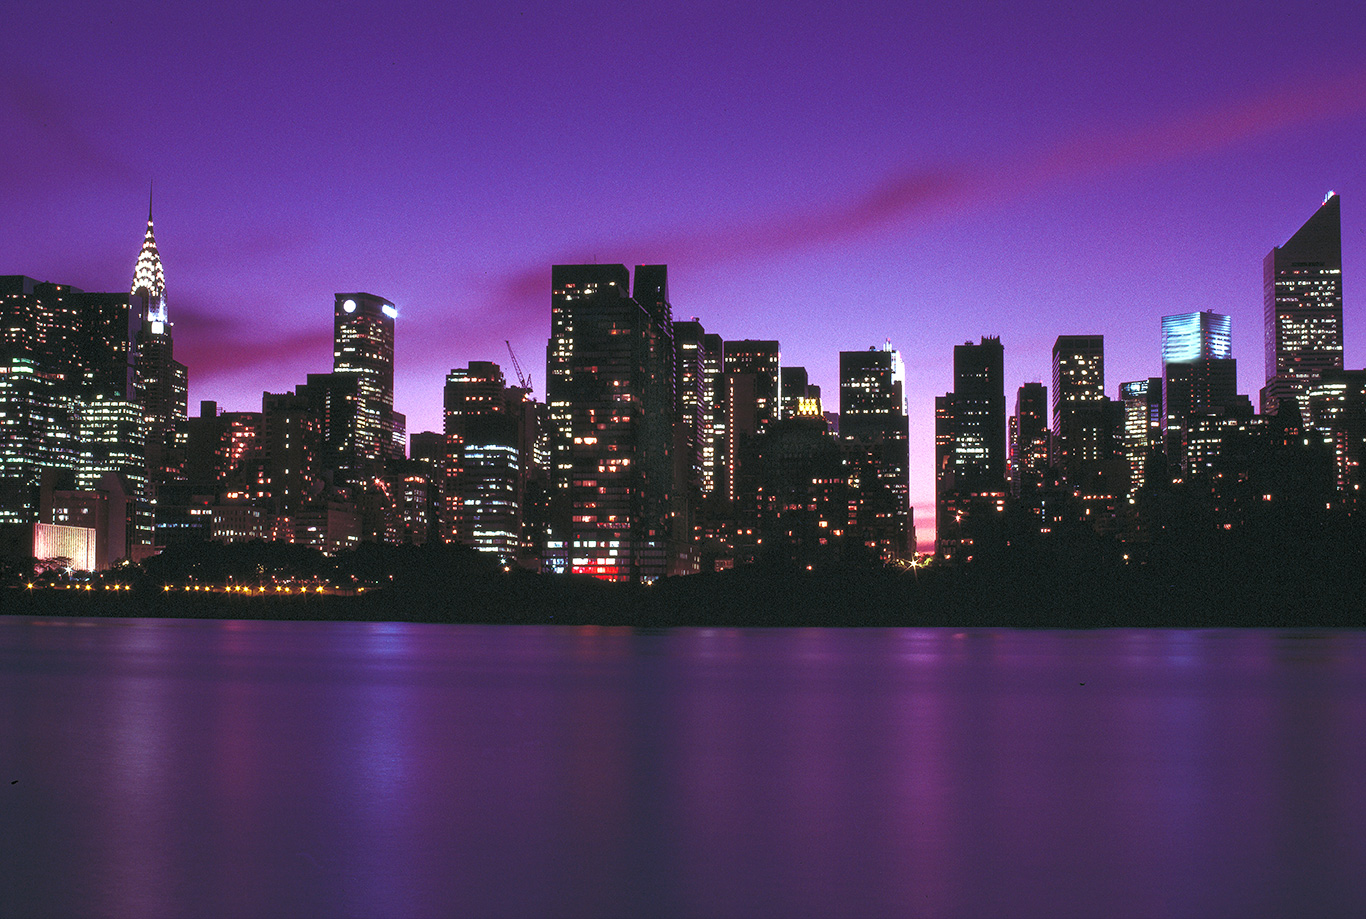 purple-skyline-2-copy.jpg